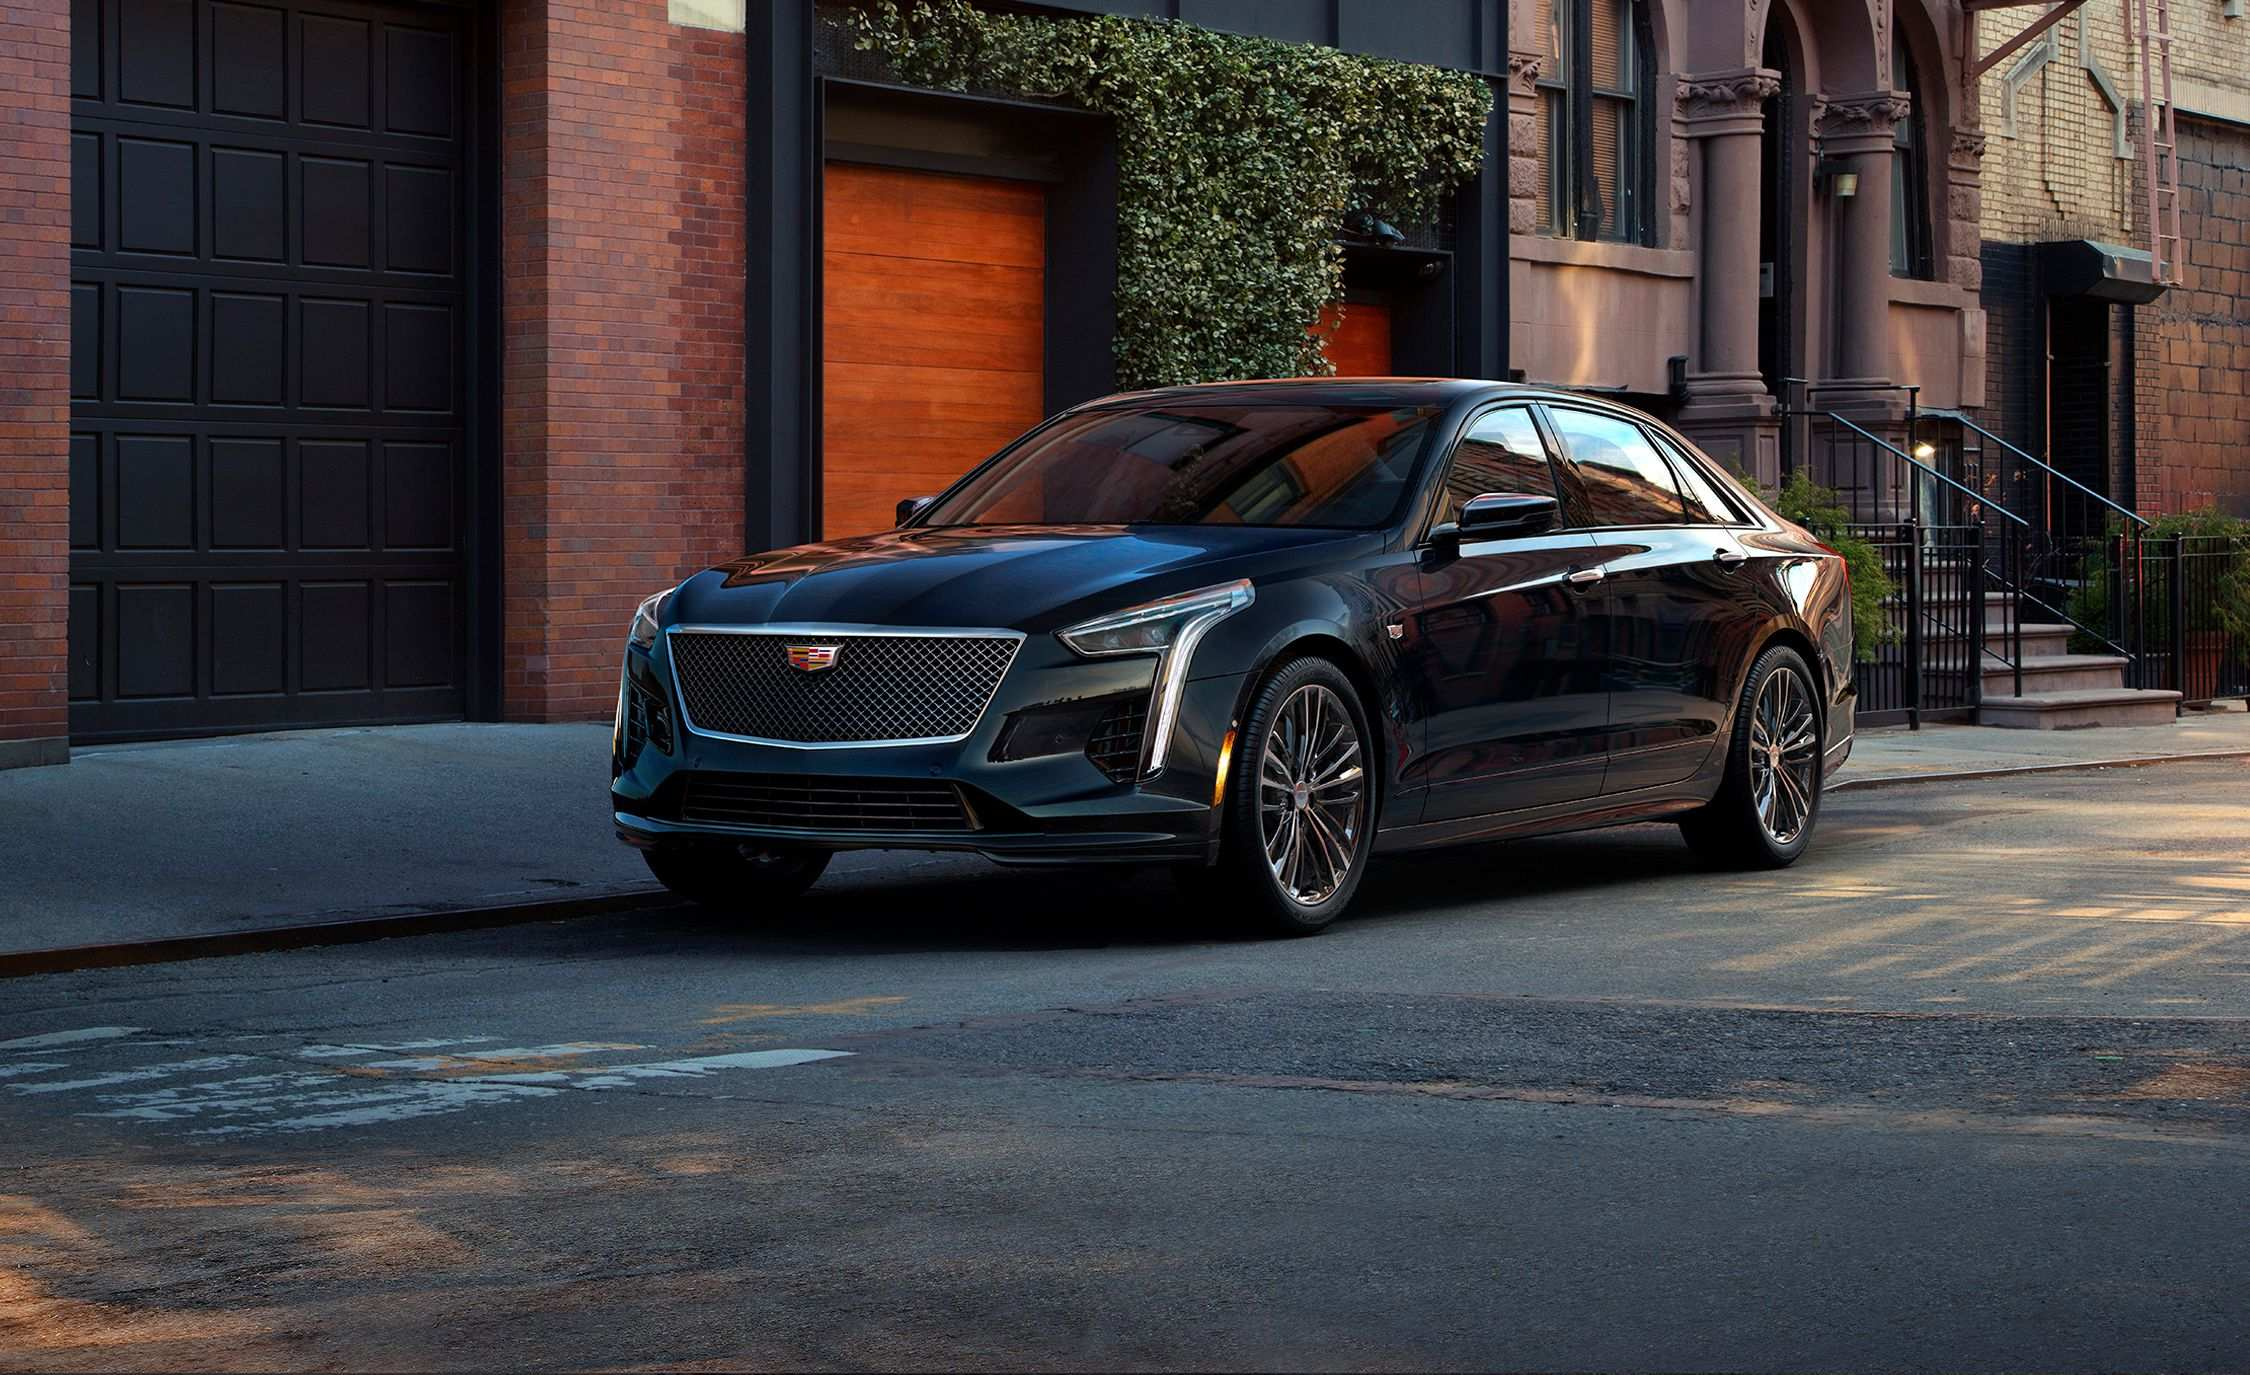 28 Concept of New 2019 Cadillac Pics Spesification Interior for New 2019 Cadillac Pics Spesification